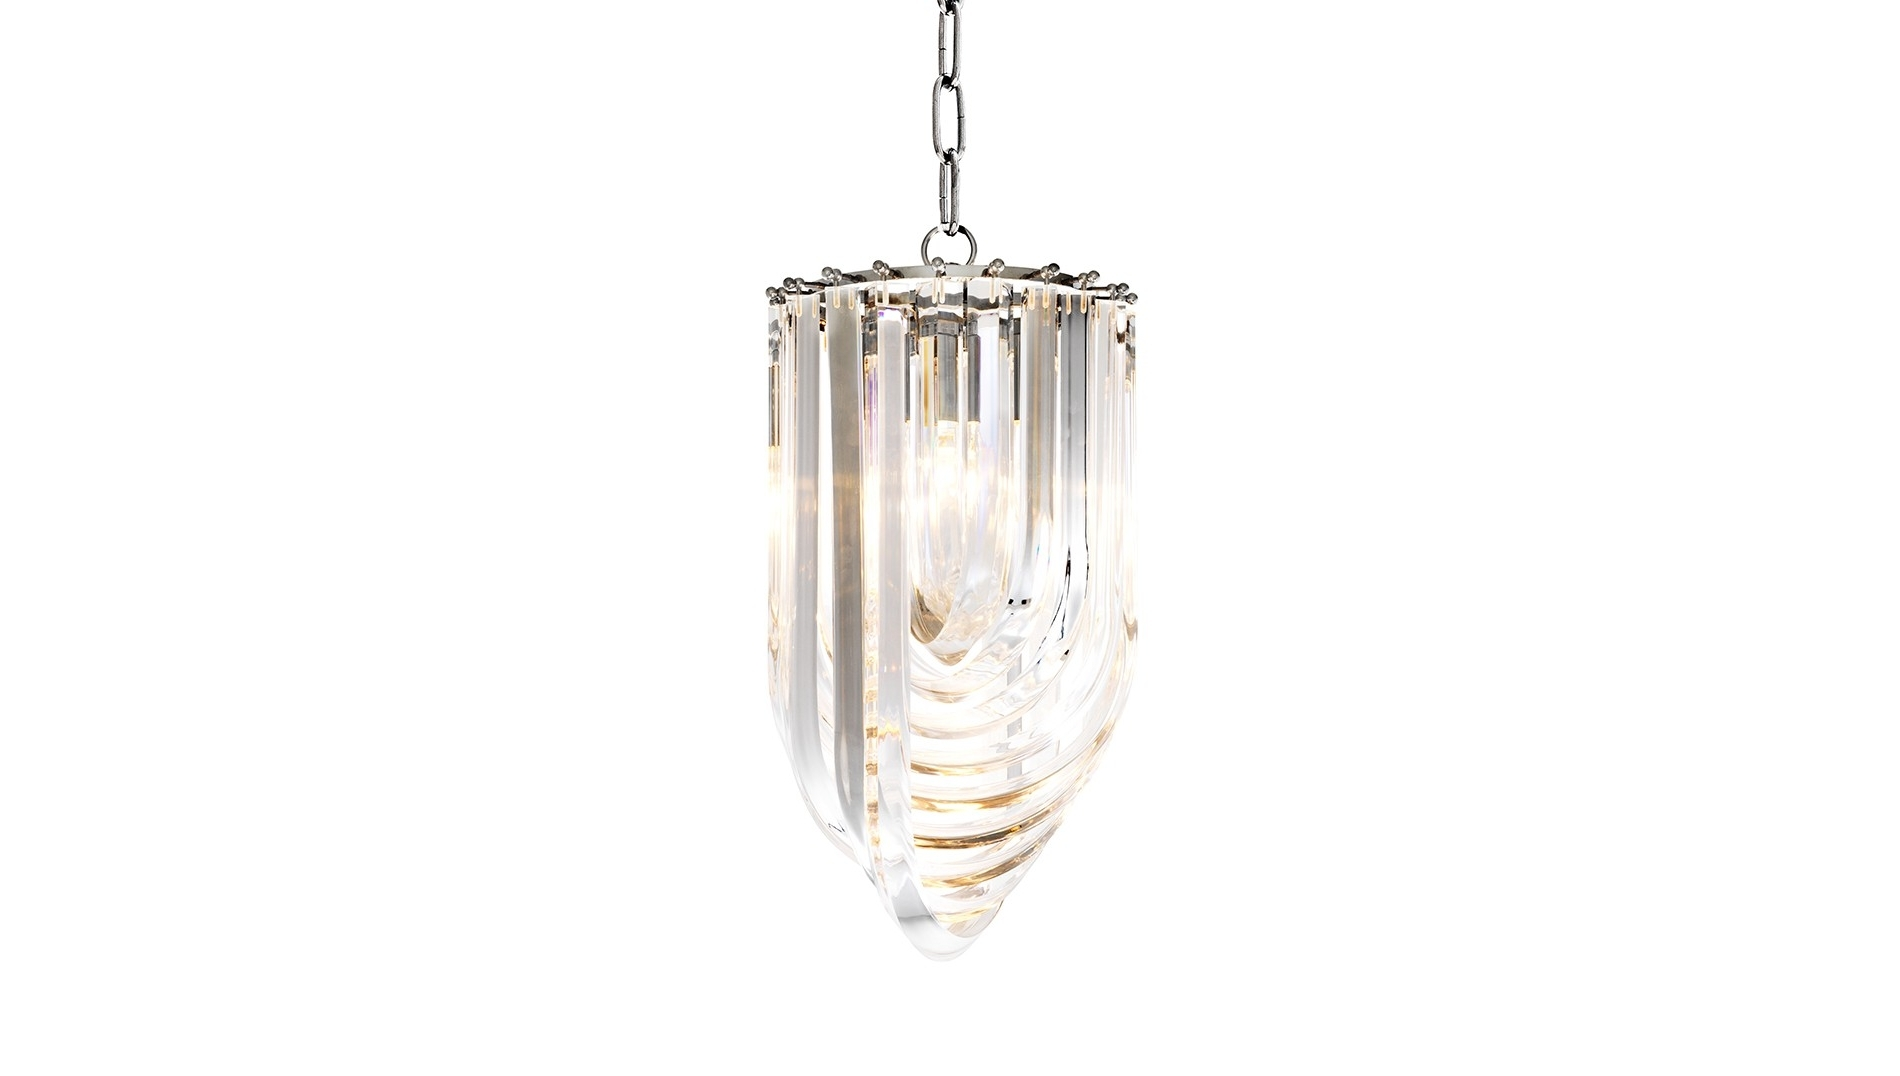 Murano Chandelier – Buy Online At Luxdeco Intended For 2018 Murano Chandelier (View 8 of 15)